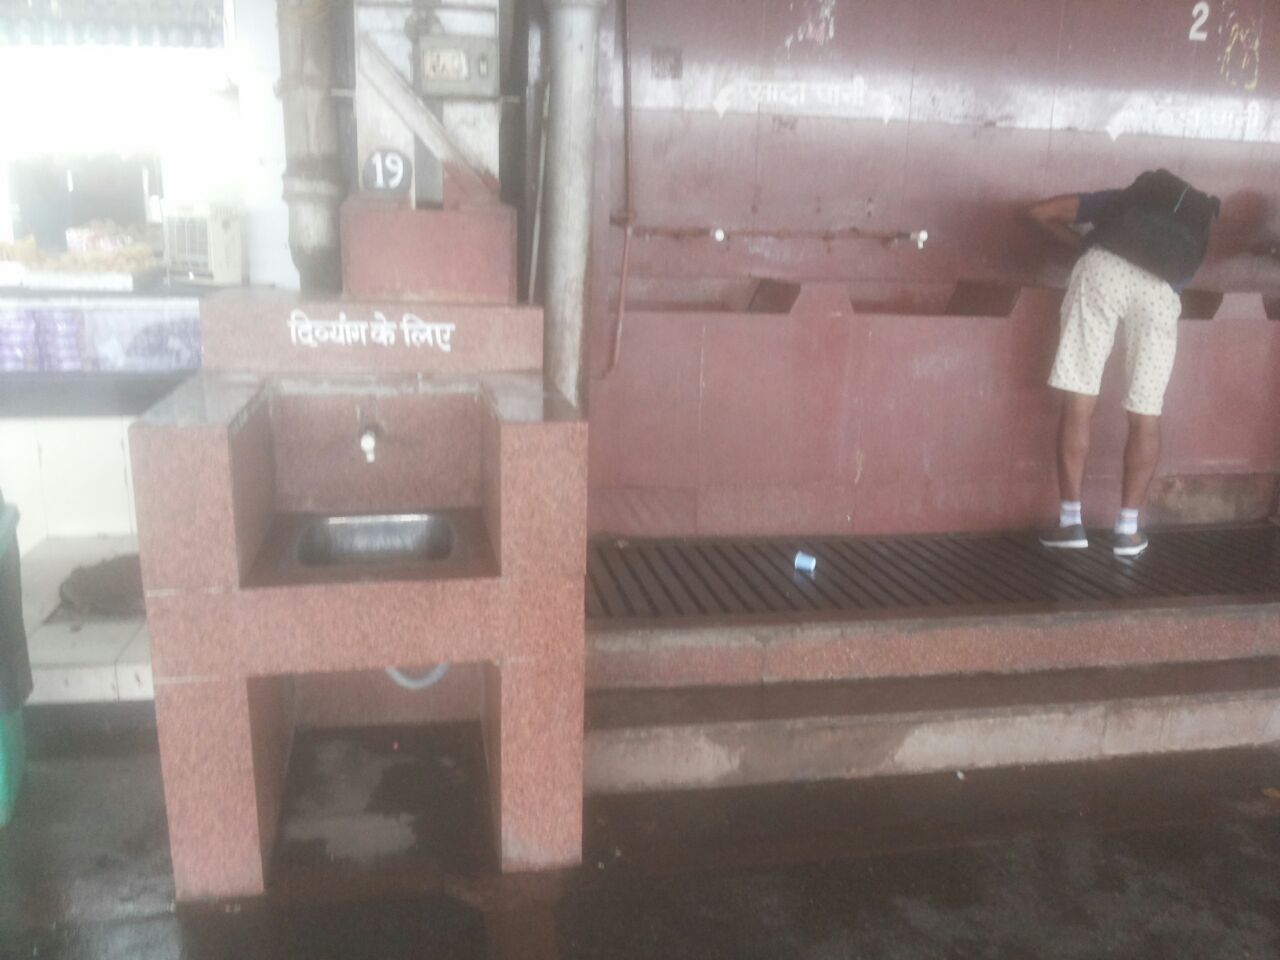 Inaccessible Water Tap without water at Very High level at Kalupur Railway Station Ahmedabadit is inacessible for all Divyang